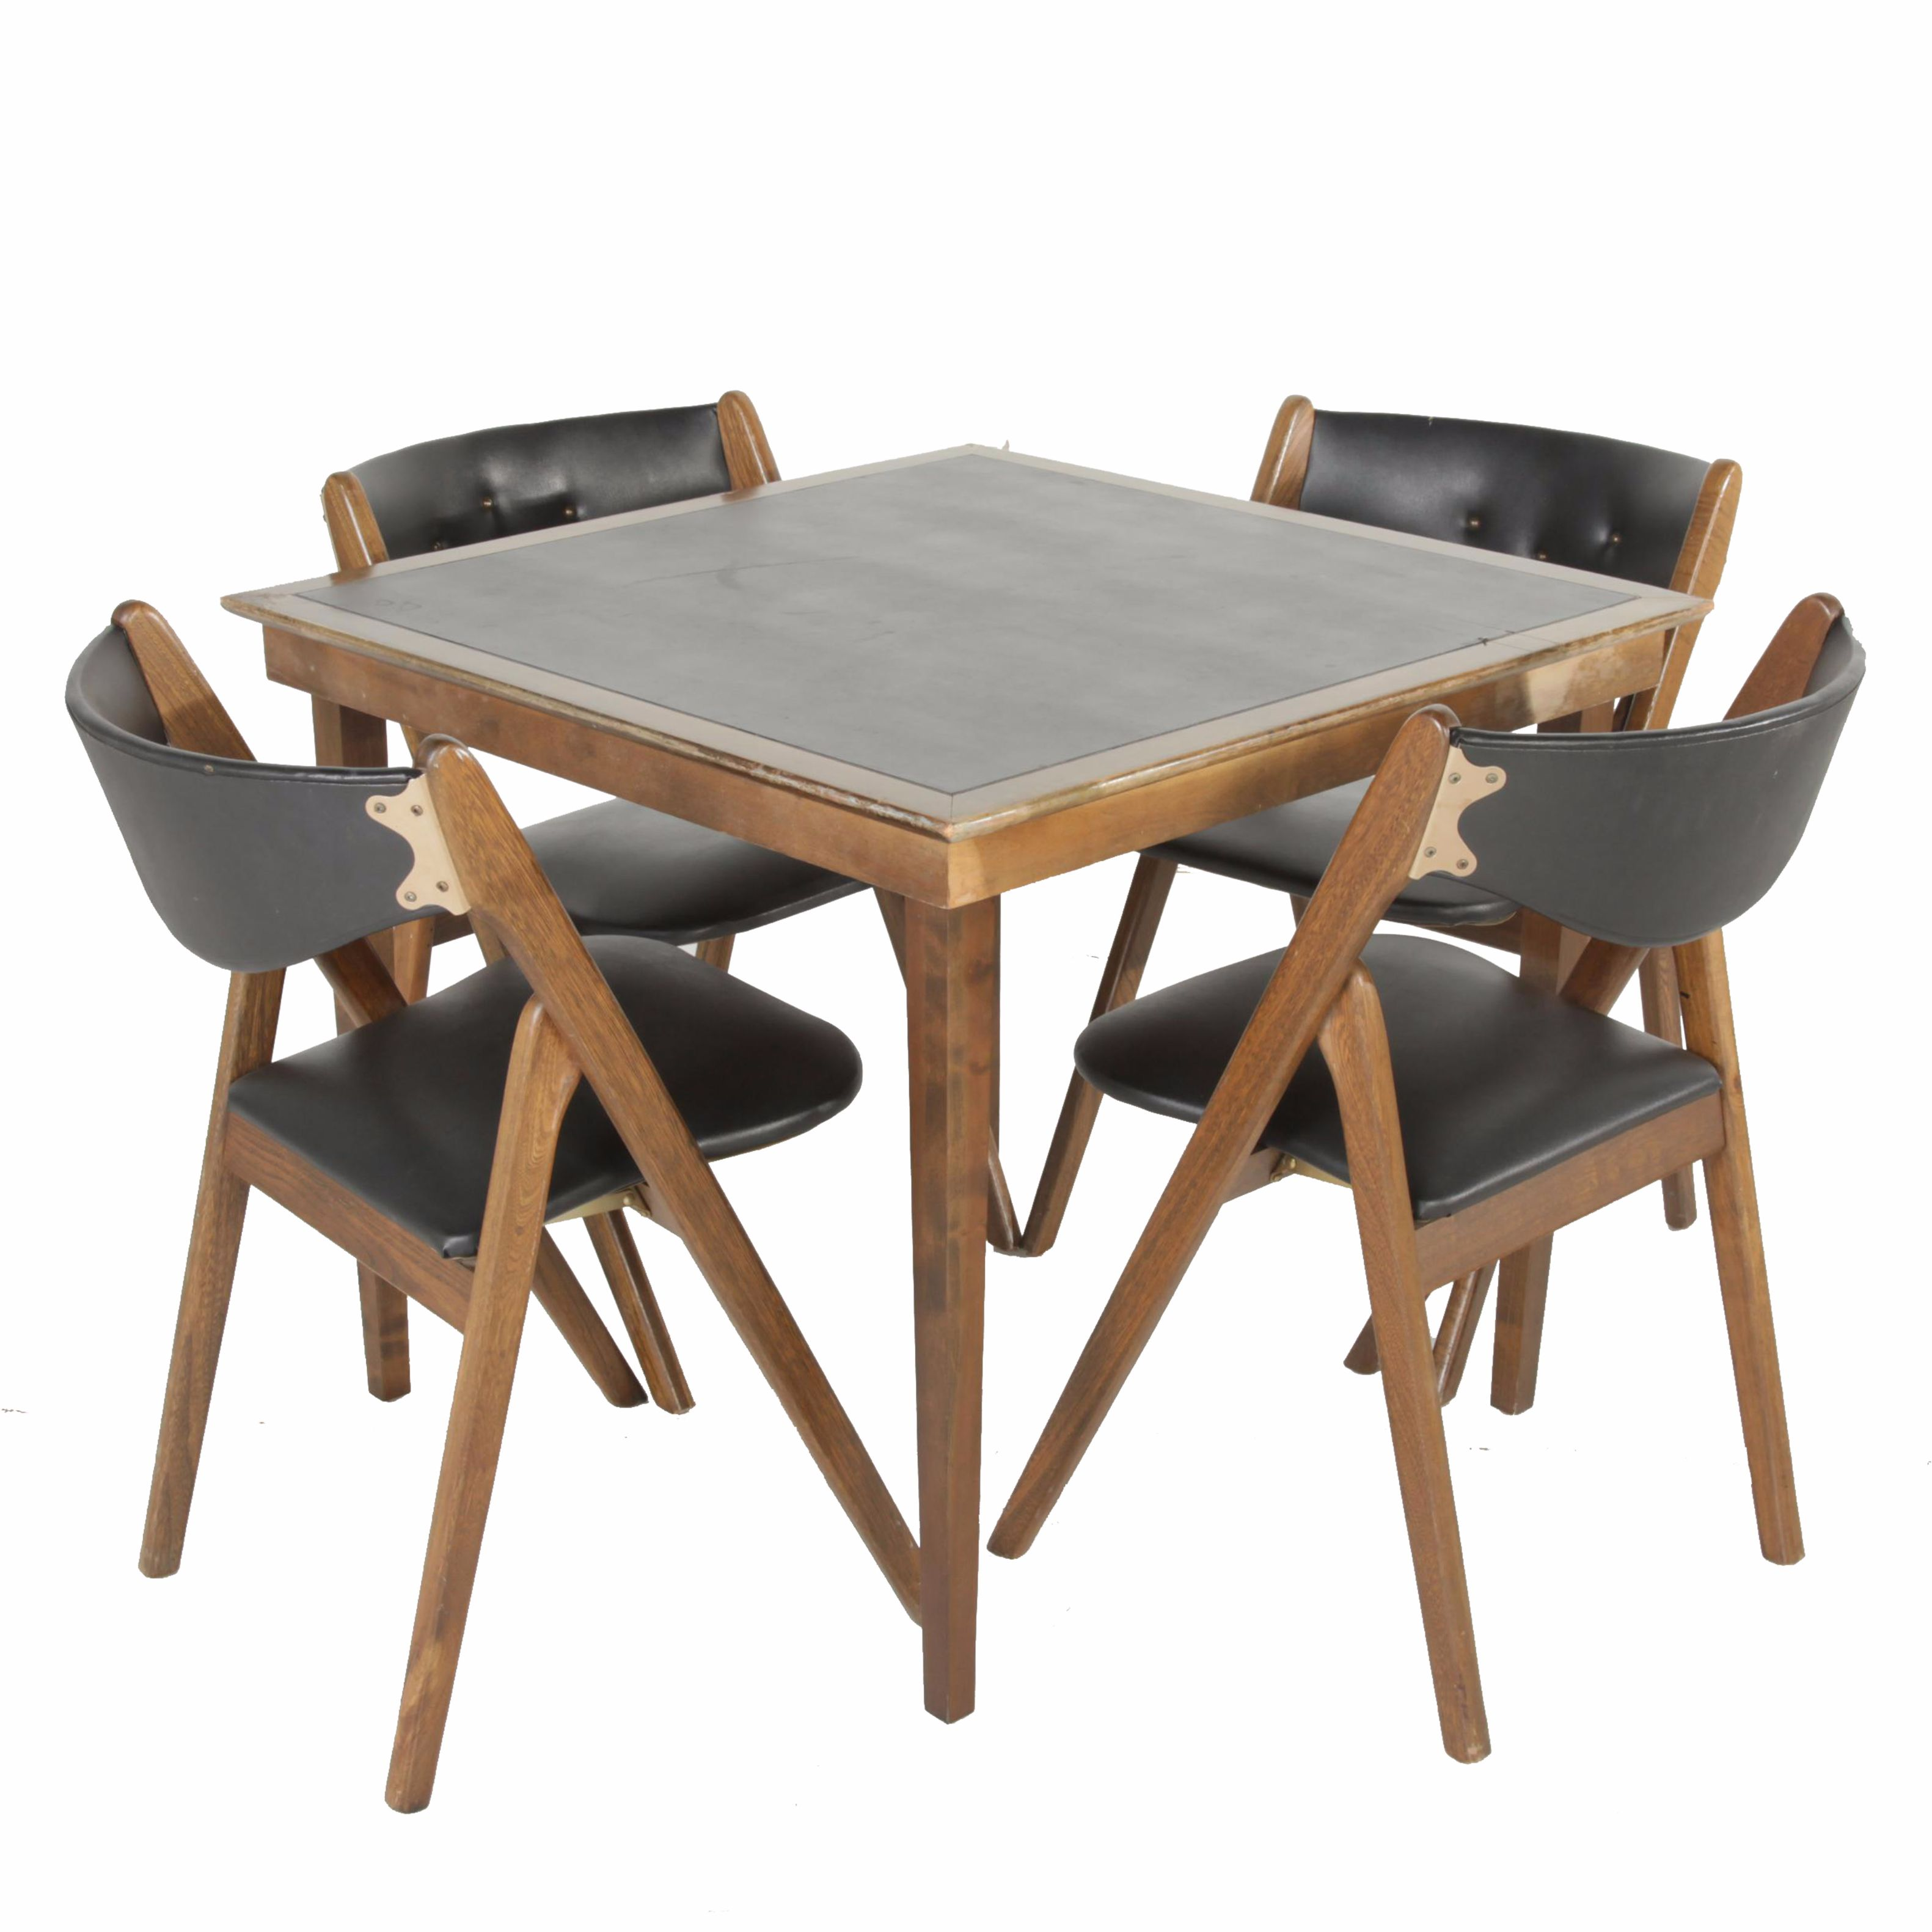 coronet folding chairs rainforest vibrating chair vintage wonderfold and table ebth